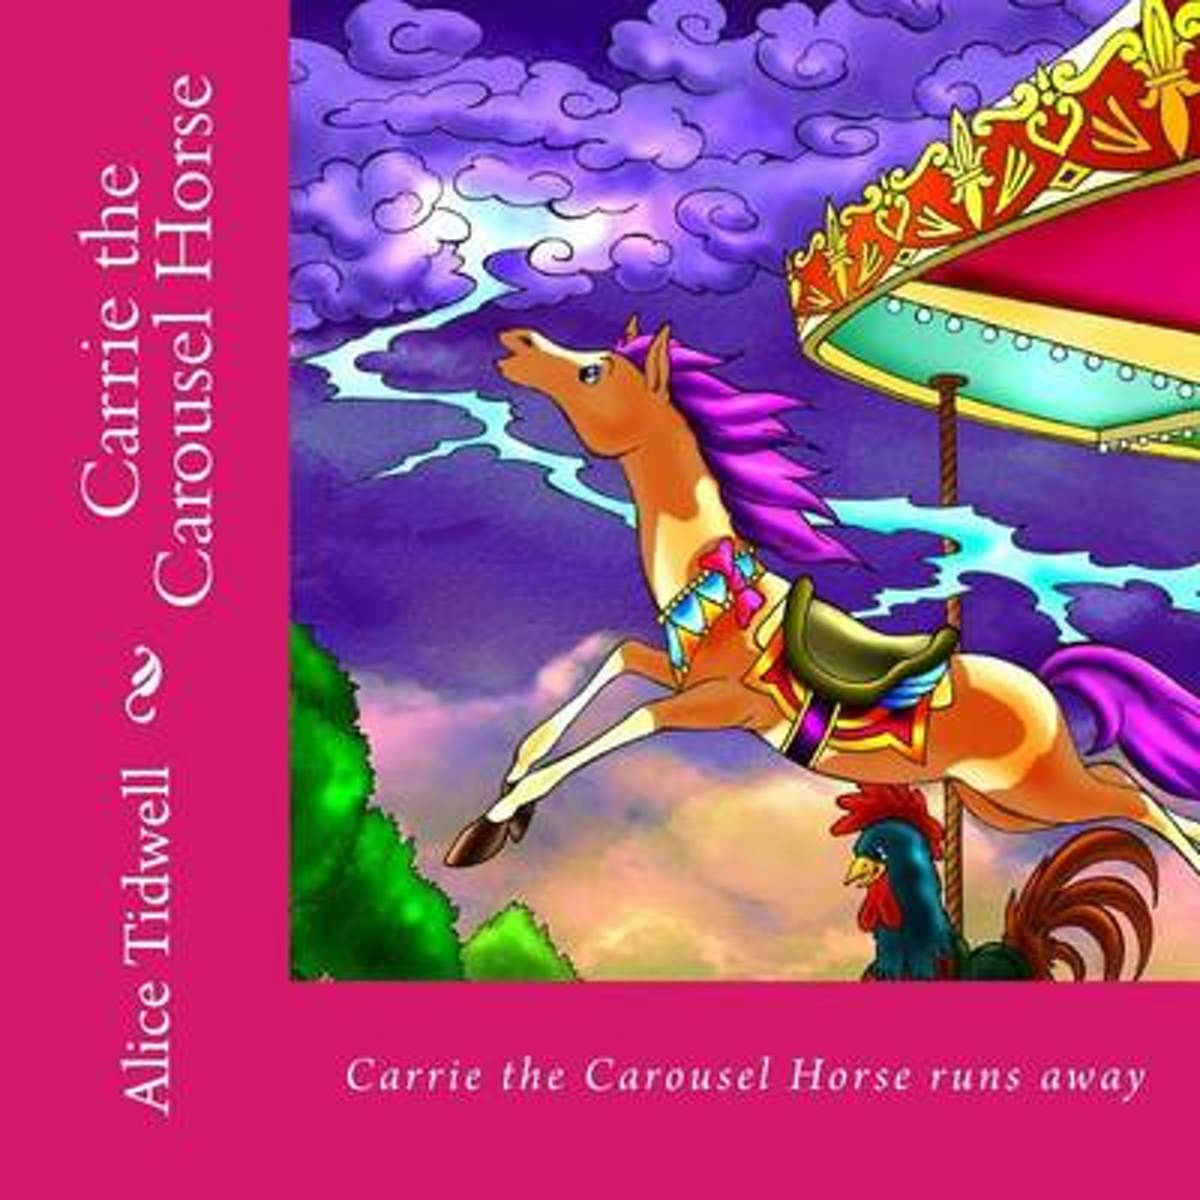 Carrie the Carousel Horse